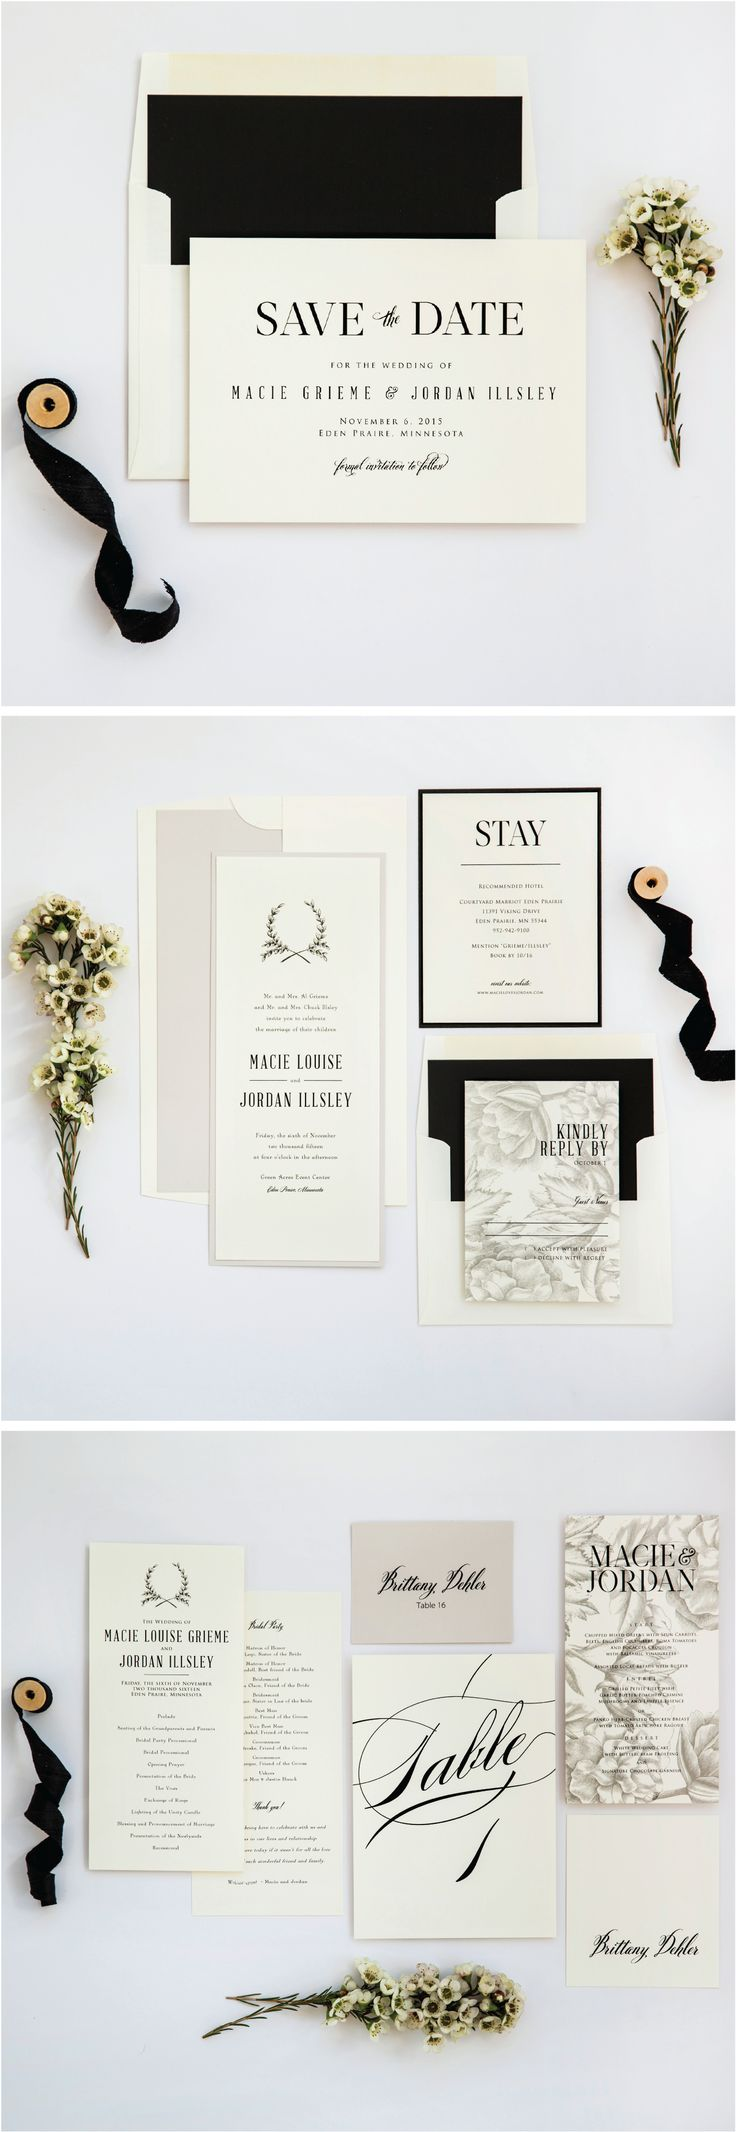 how to write muslim wedding invitation card%0A Ivory  Stone and Black Neutral Rustic Wedding Invitation Suite from  Champagne Press http